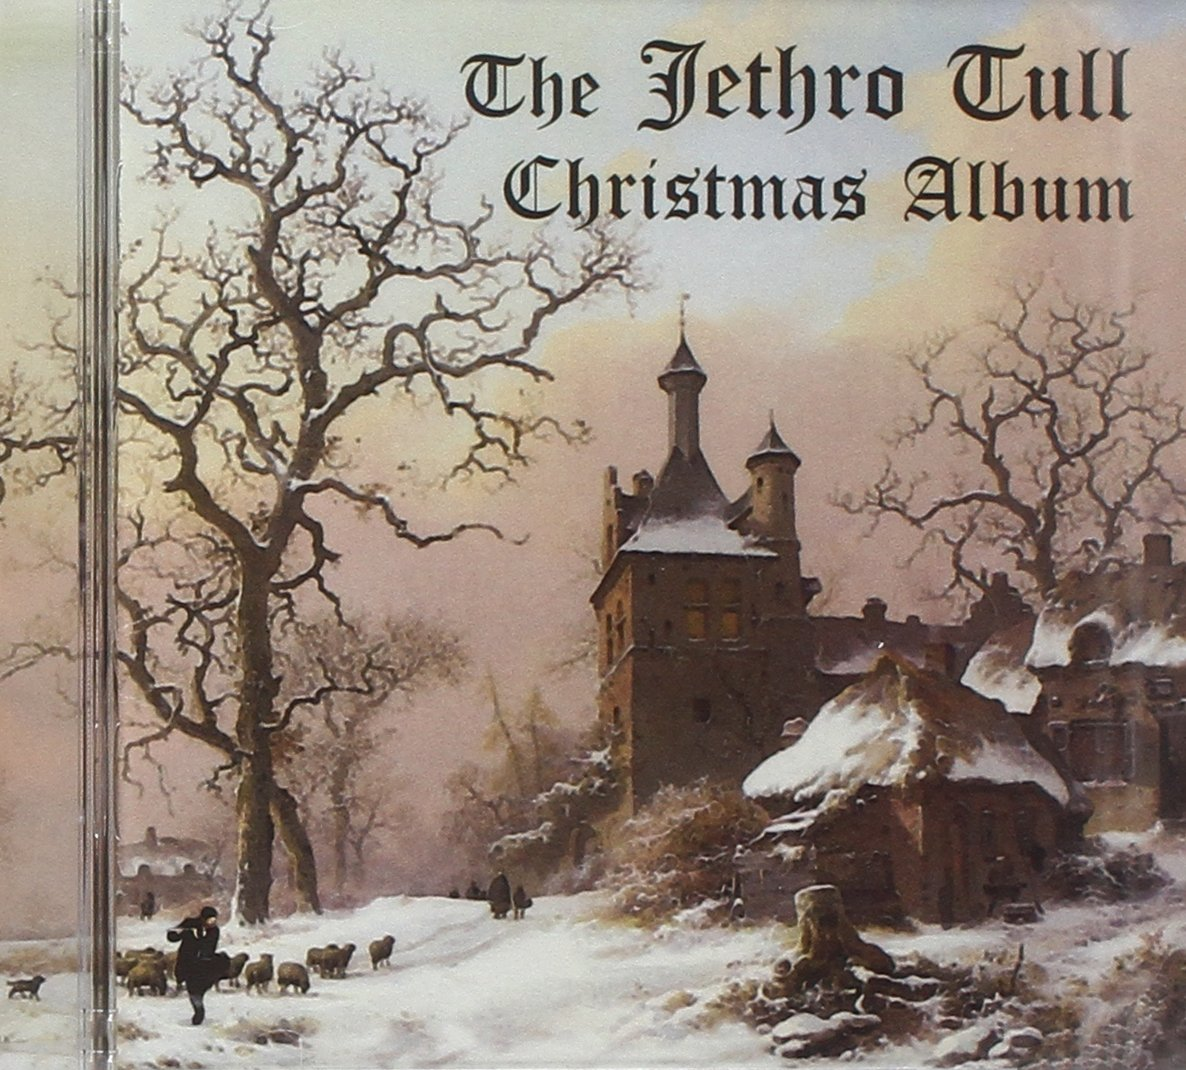 Jethro Tull - The Jethro Tull Christmas - Amazon.com Music